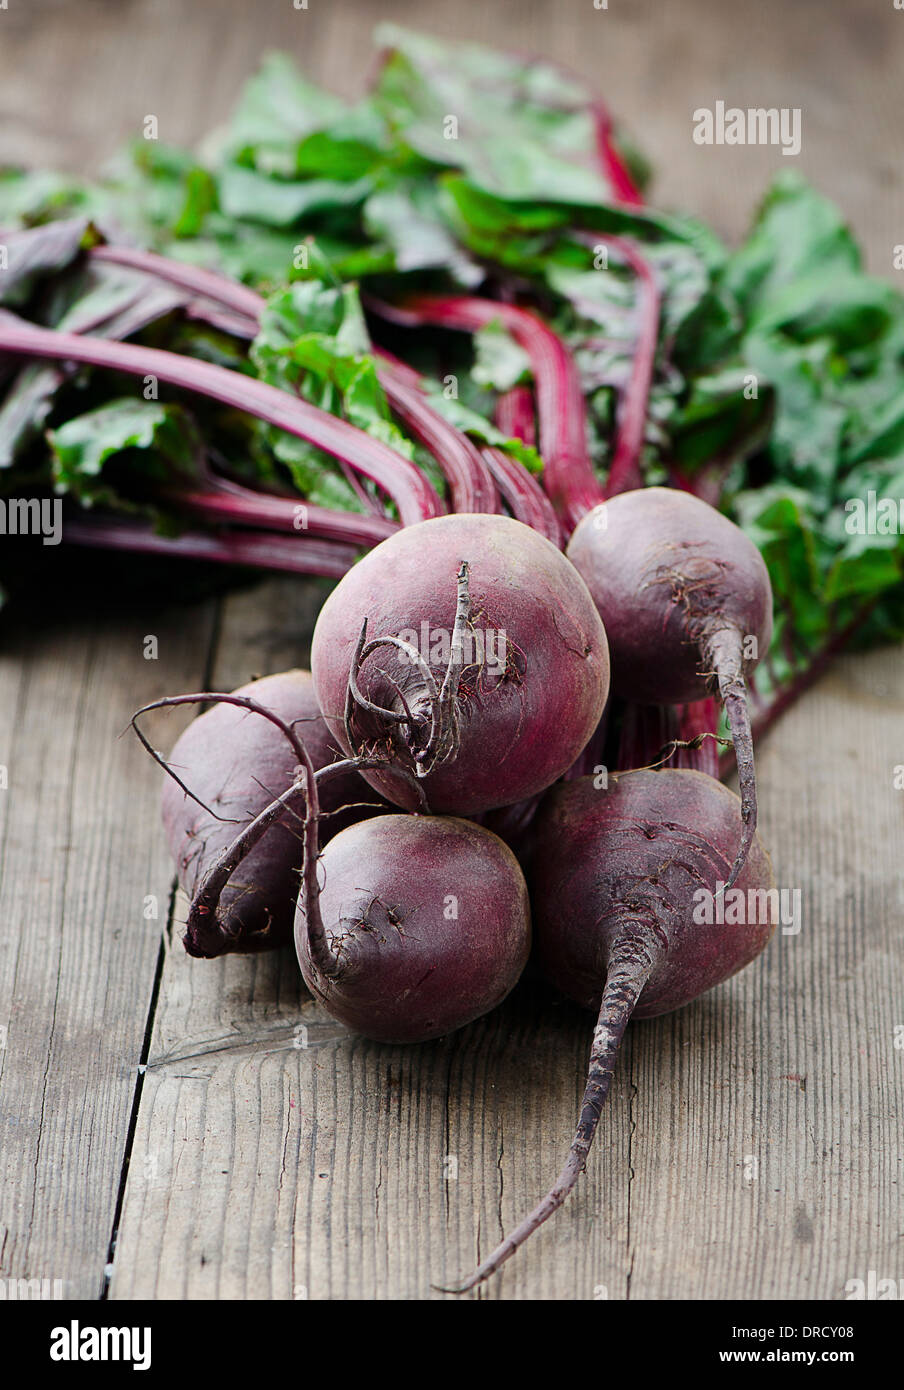 A freshly picked bunch of beetroot - Stock Image